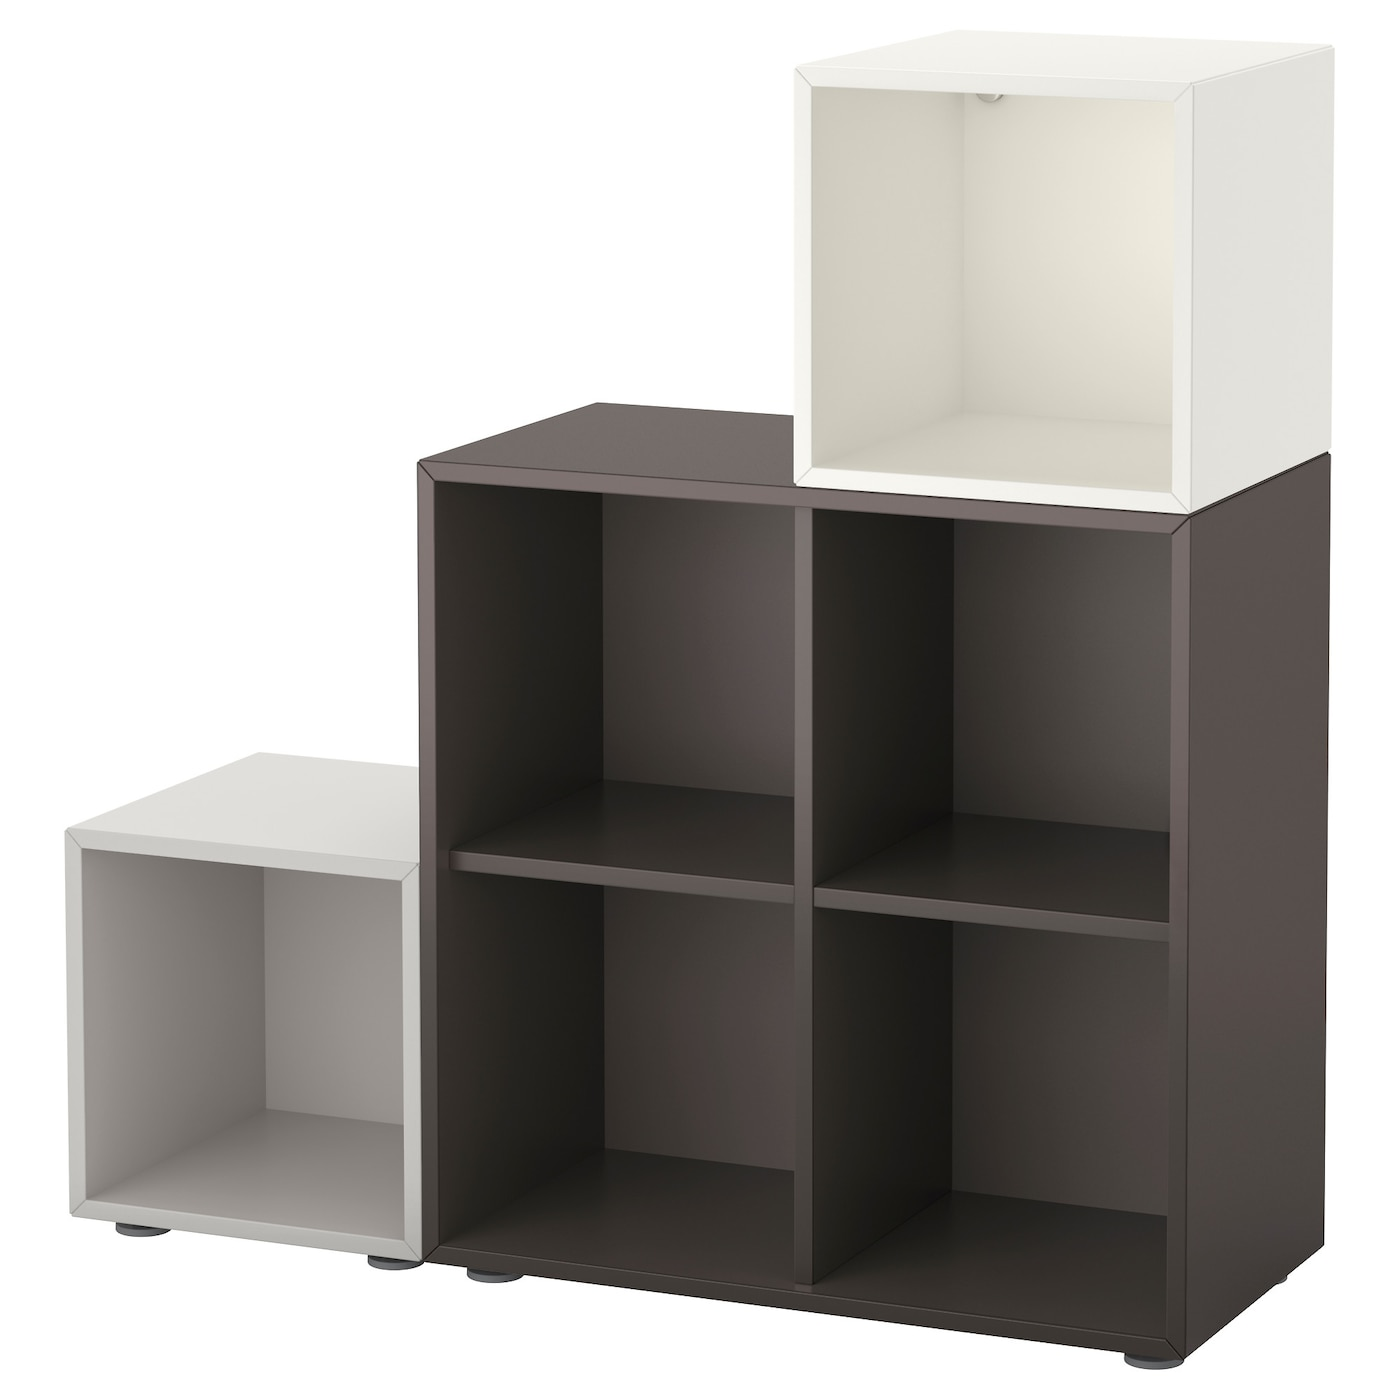 eket cabinet combination with feet white dark grey light. Black Bedroom Furniture Sets. Home Design Ideas